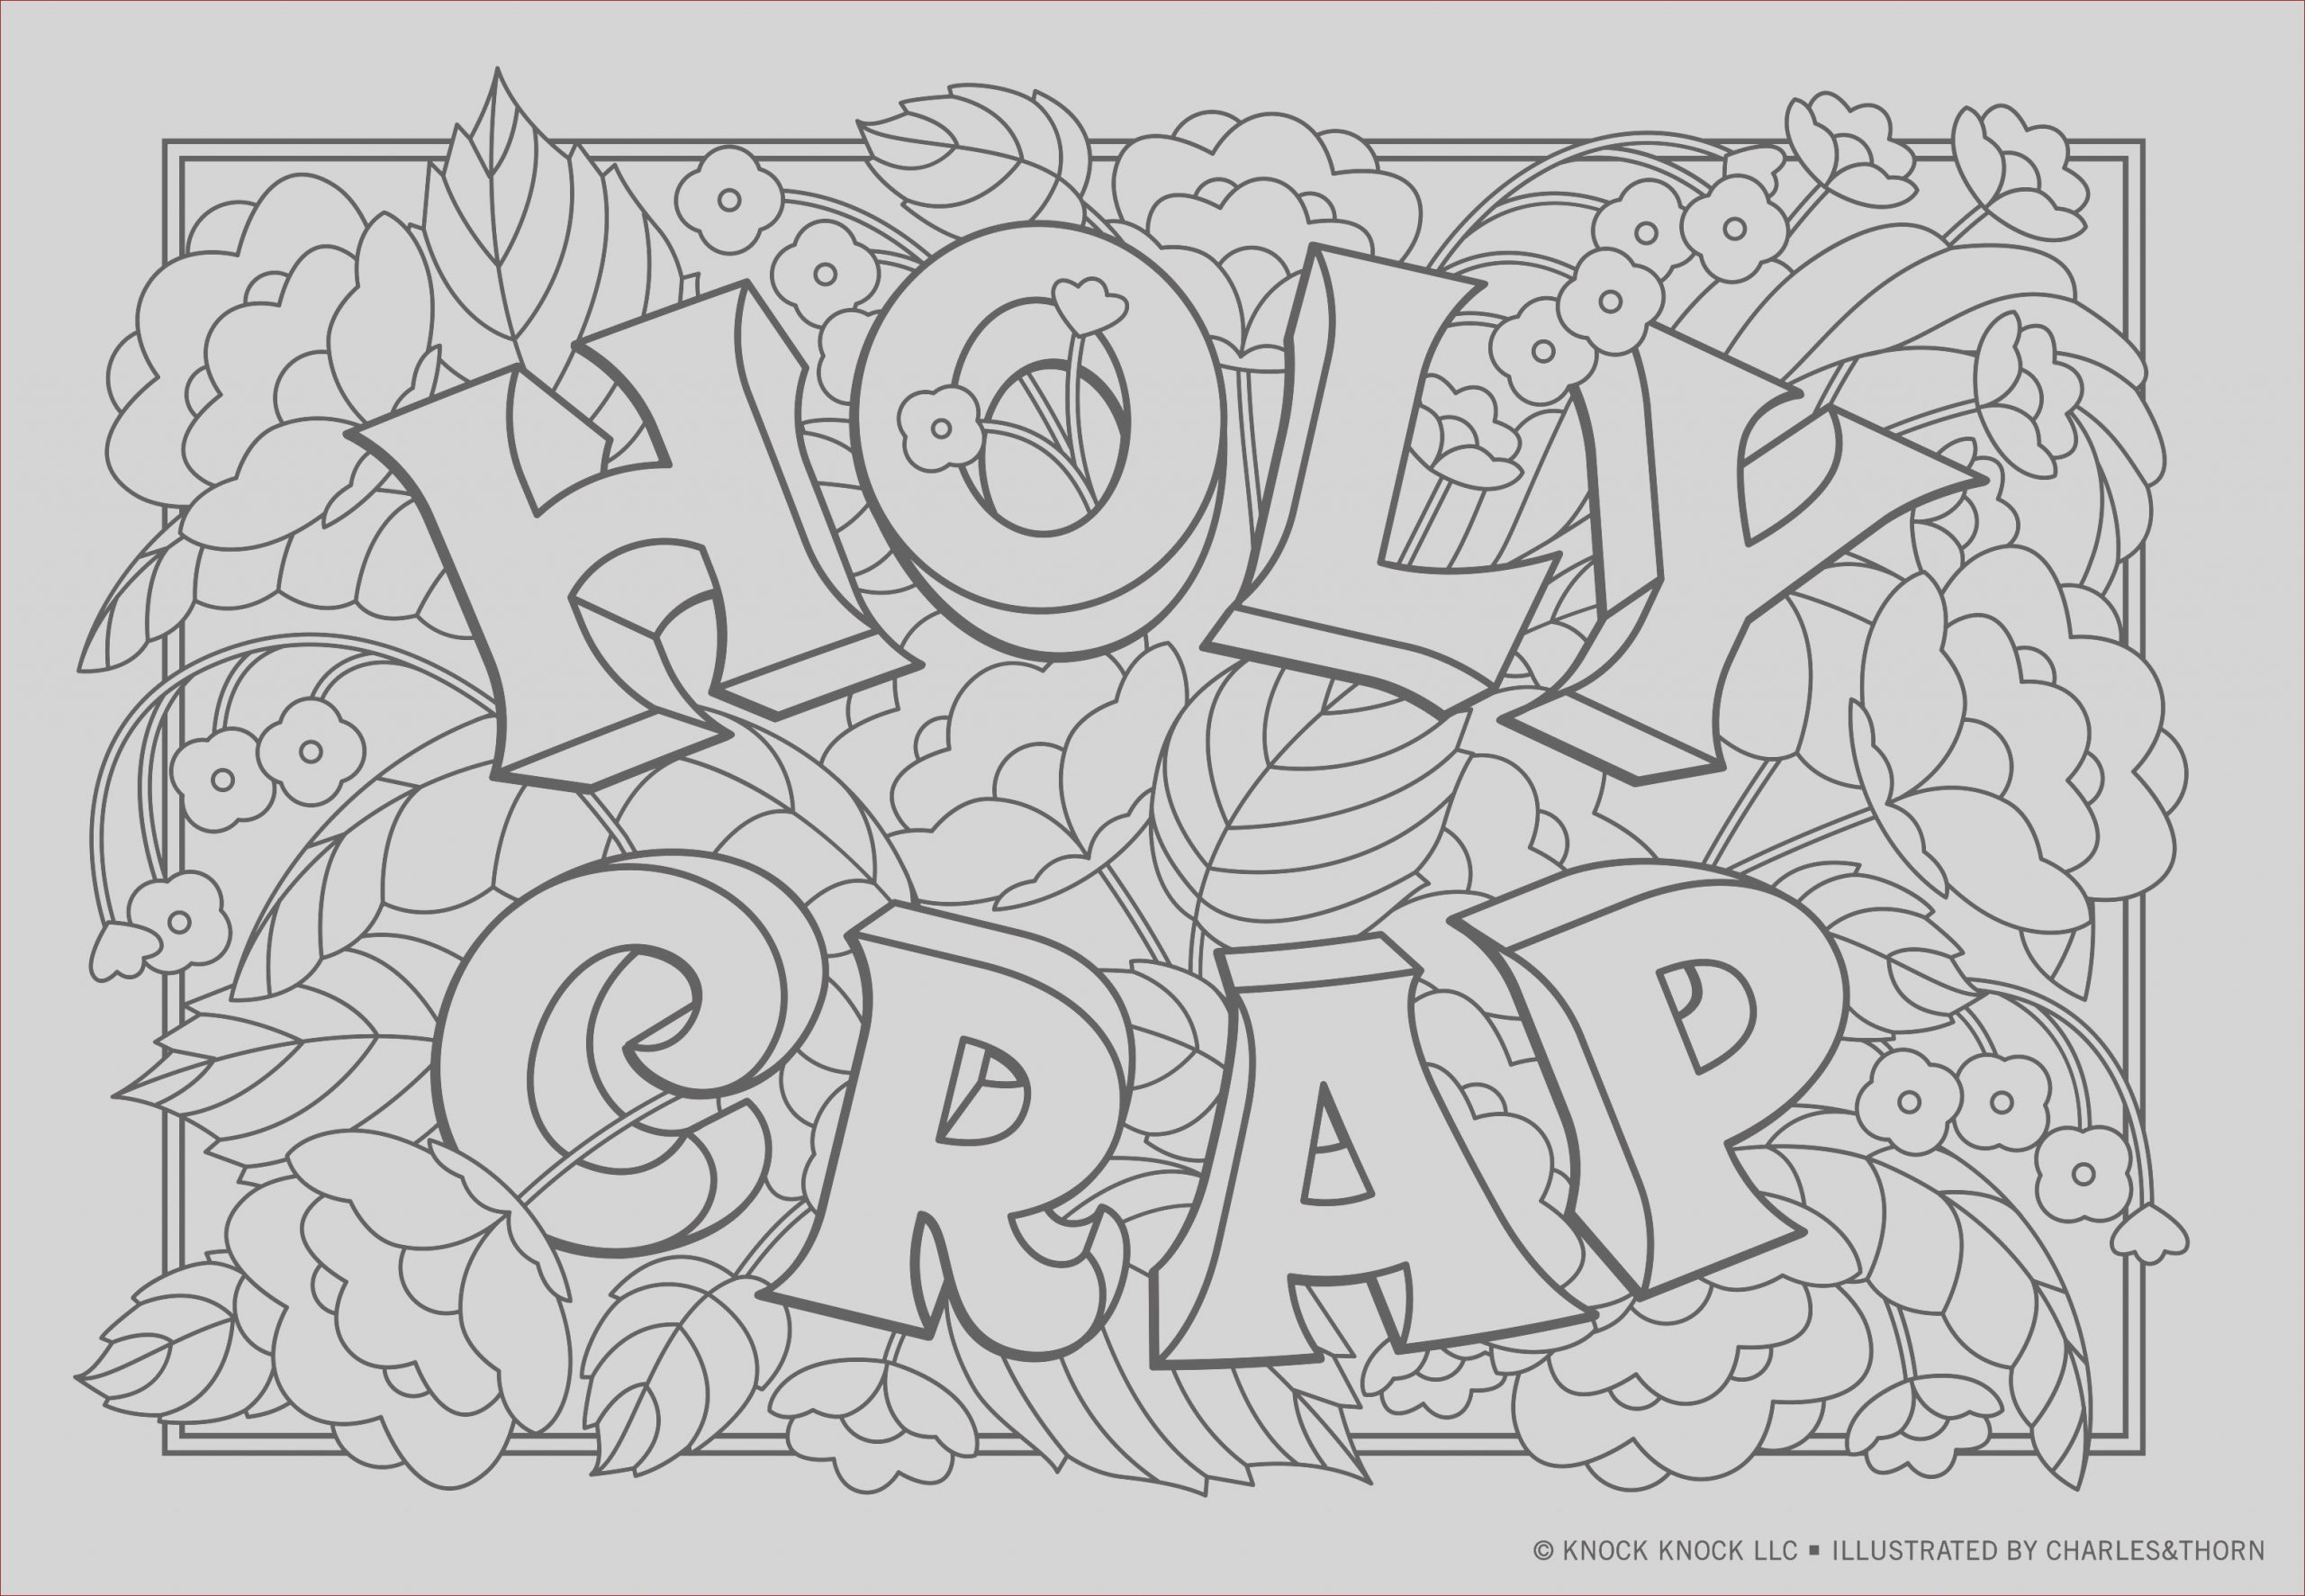 nsfw safe wfh coloring pages